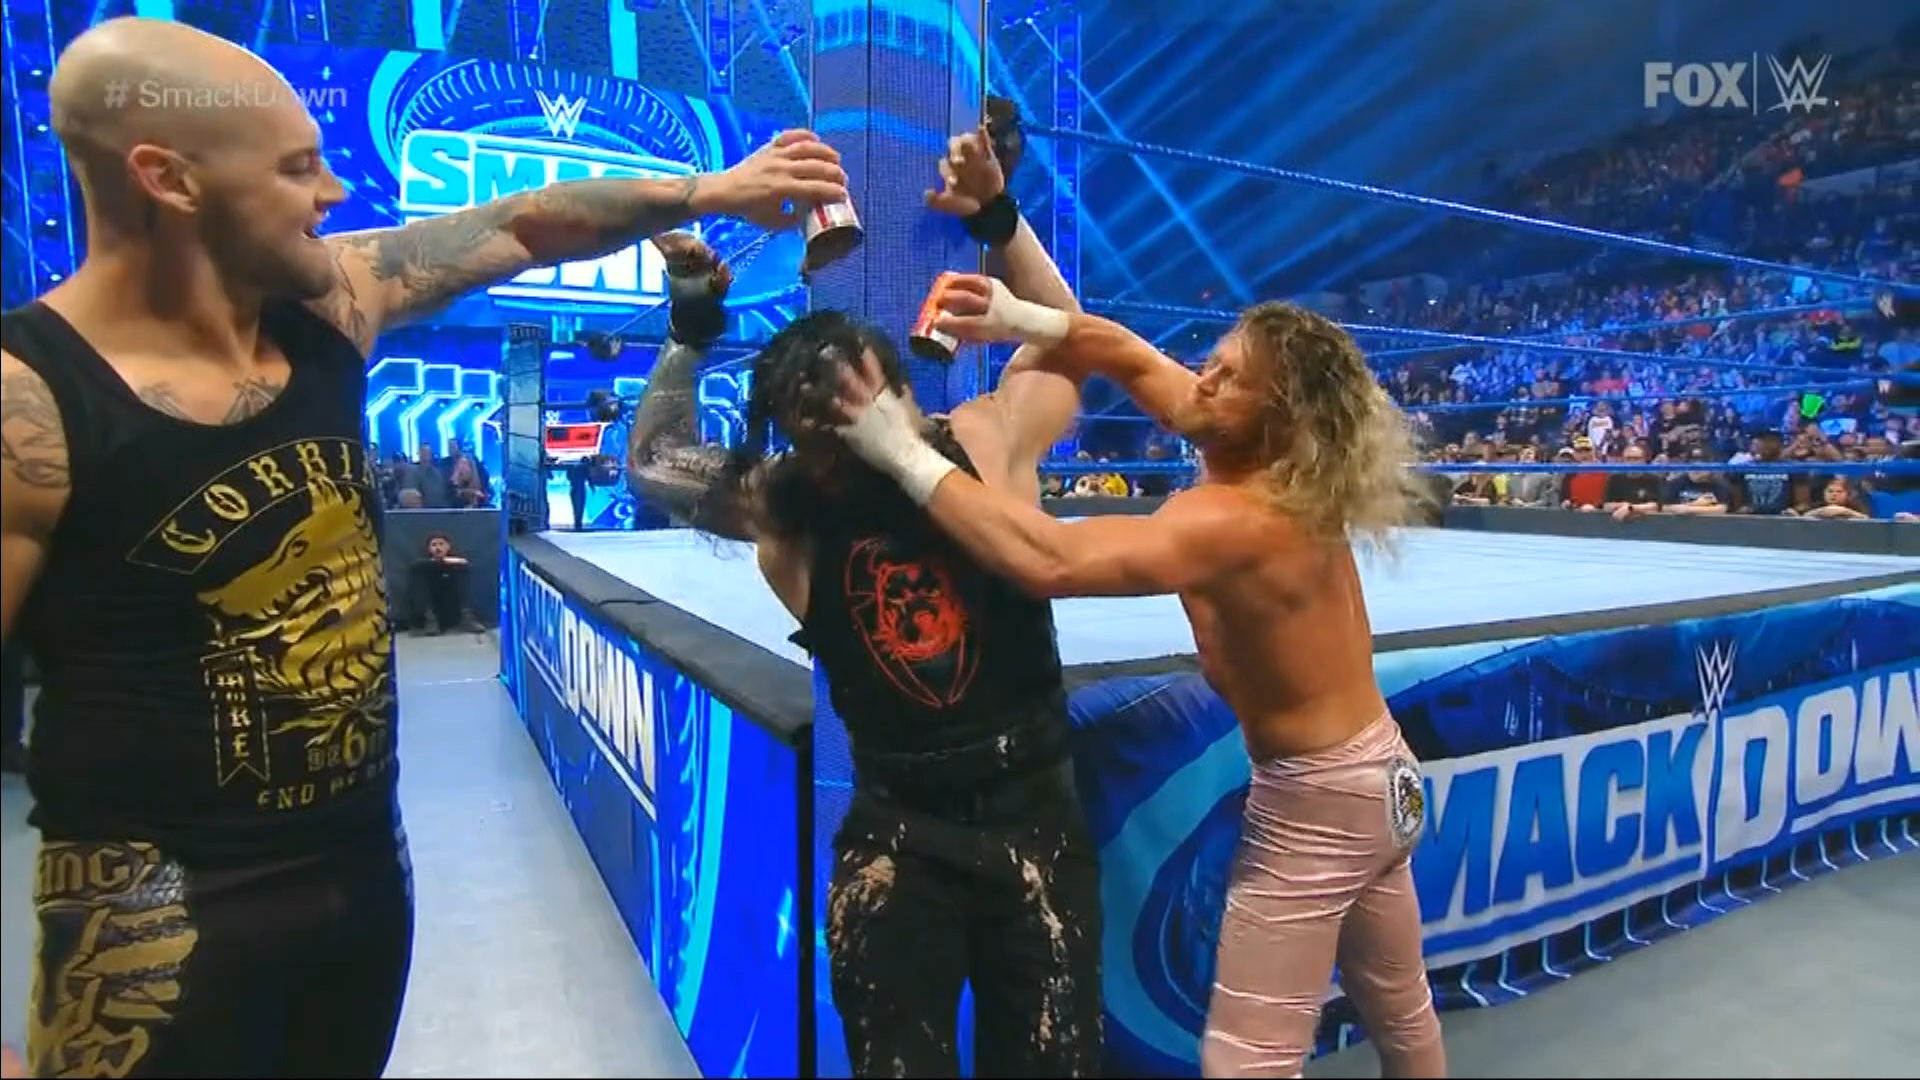 WWE Friday Night Smackdown 2019 12 06 1080i HDTV-WH [12.5 GB]